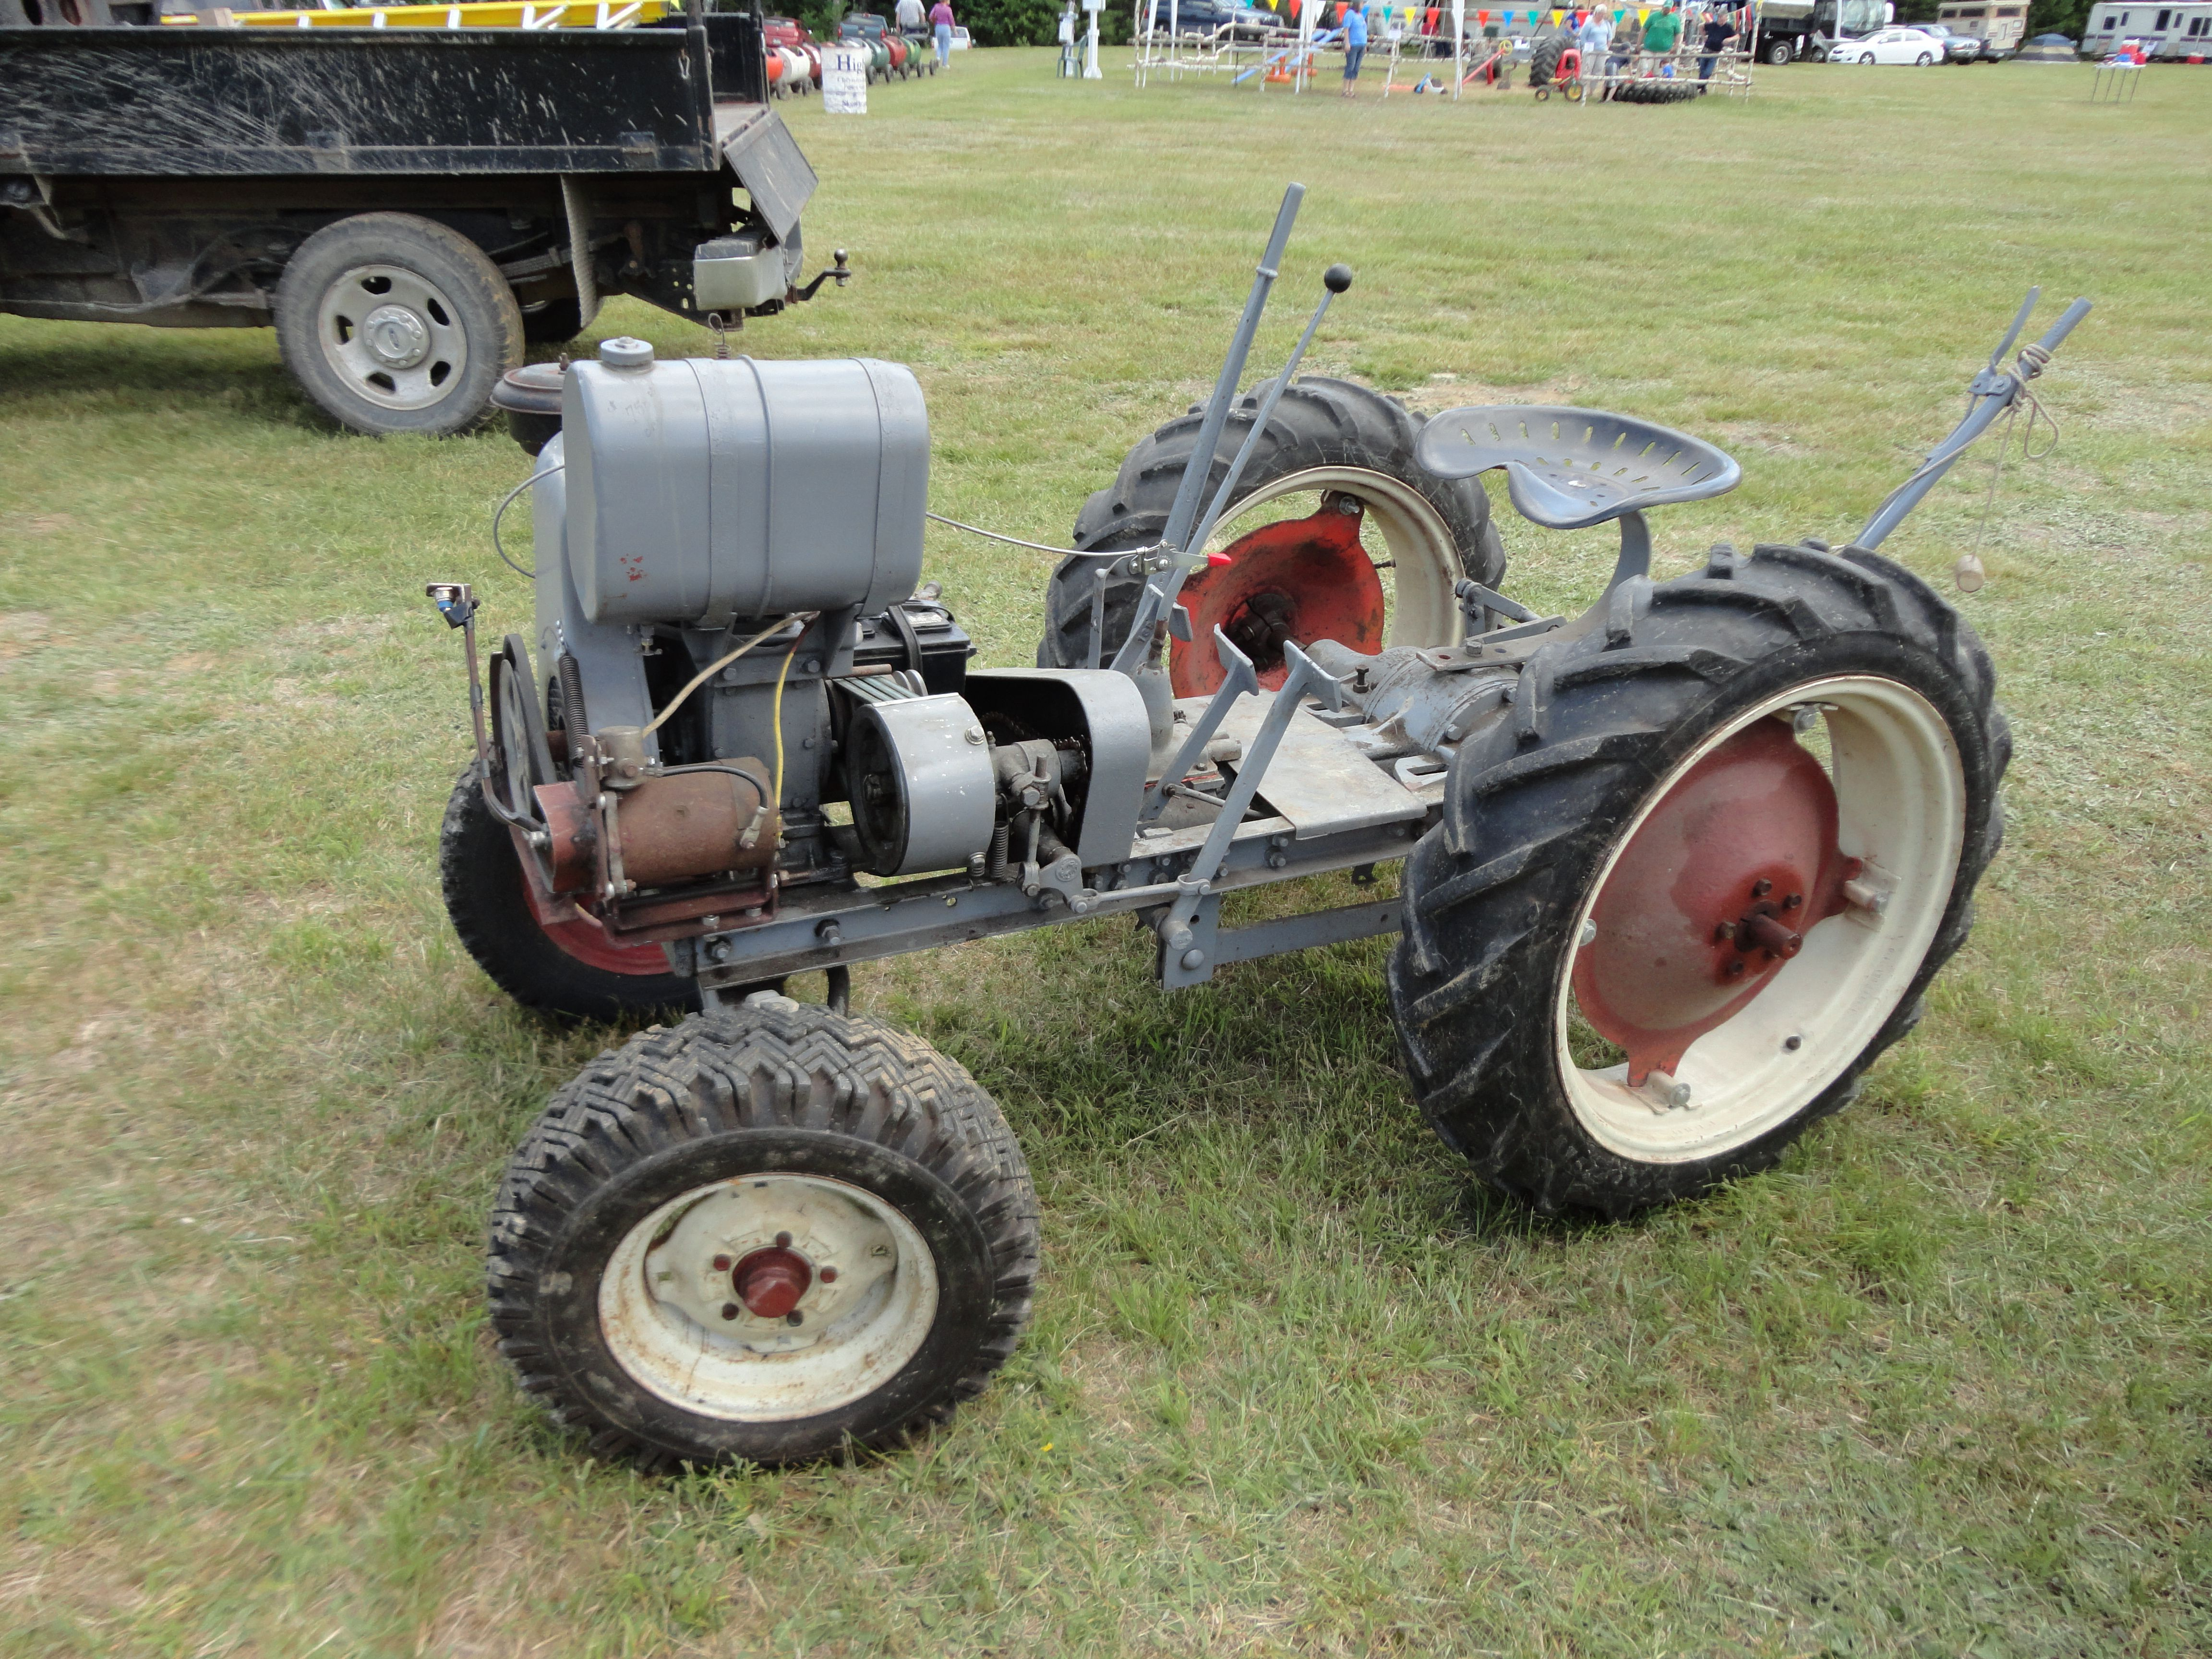 300 Gibson Tractor. Looks like something that was built in